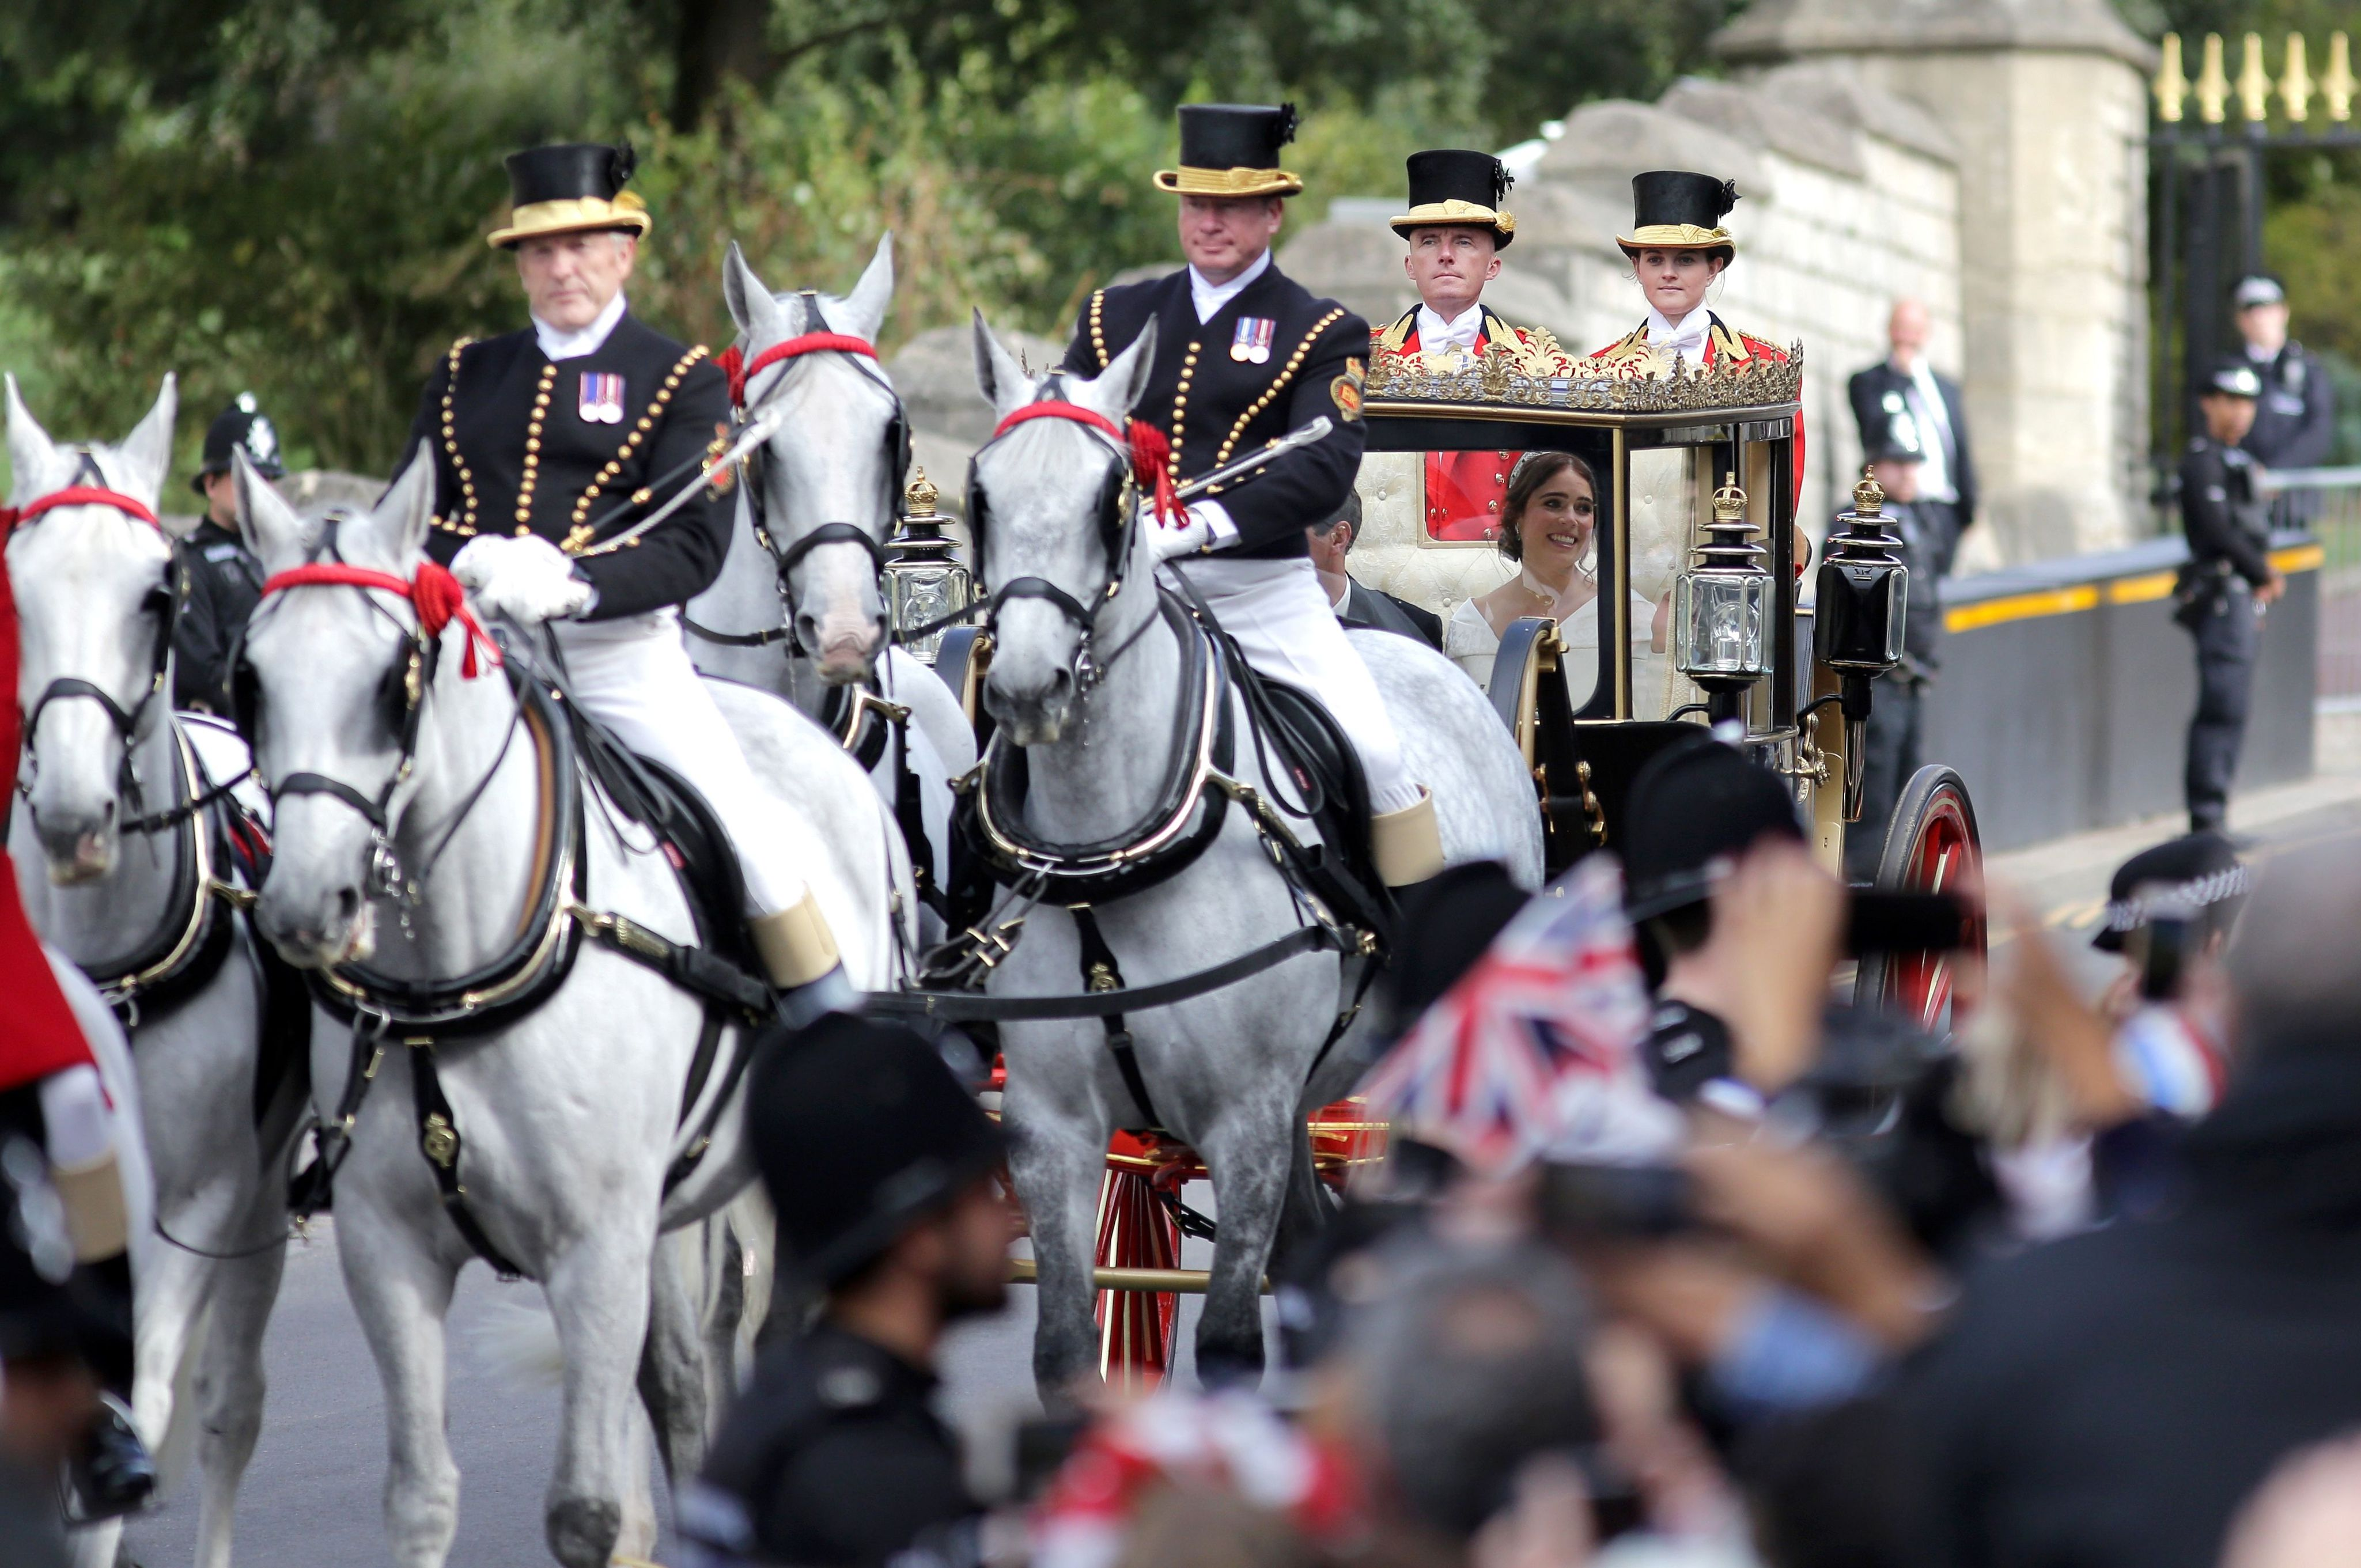 their carriage wound its way through Windsor High Street and the Long Walk, before an afternoon reception hosted by the Queen in St George's Hall at the castle.